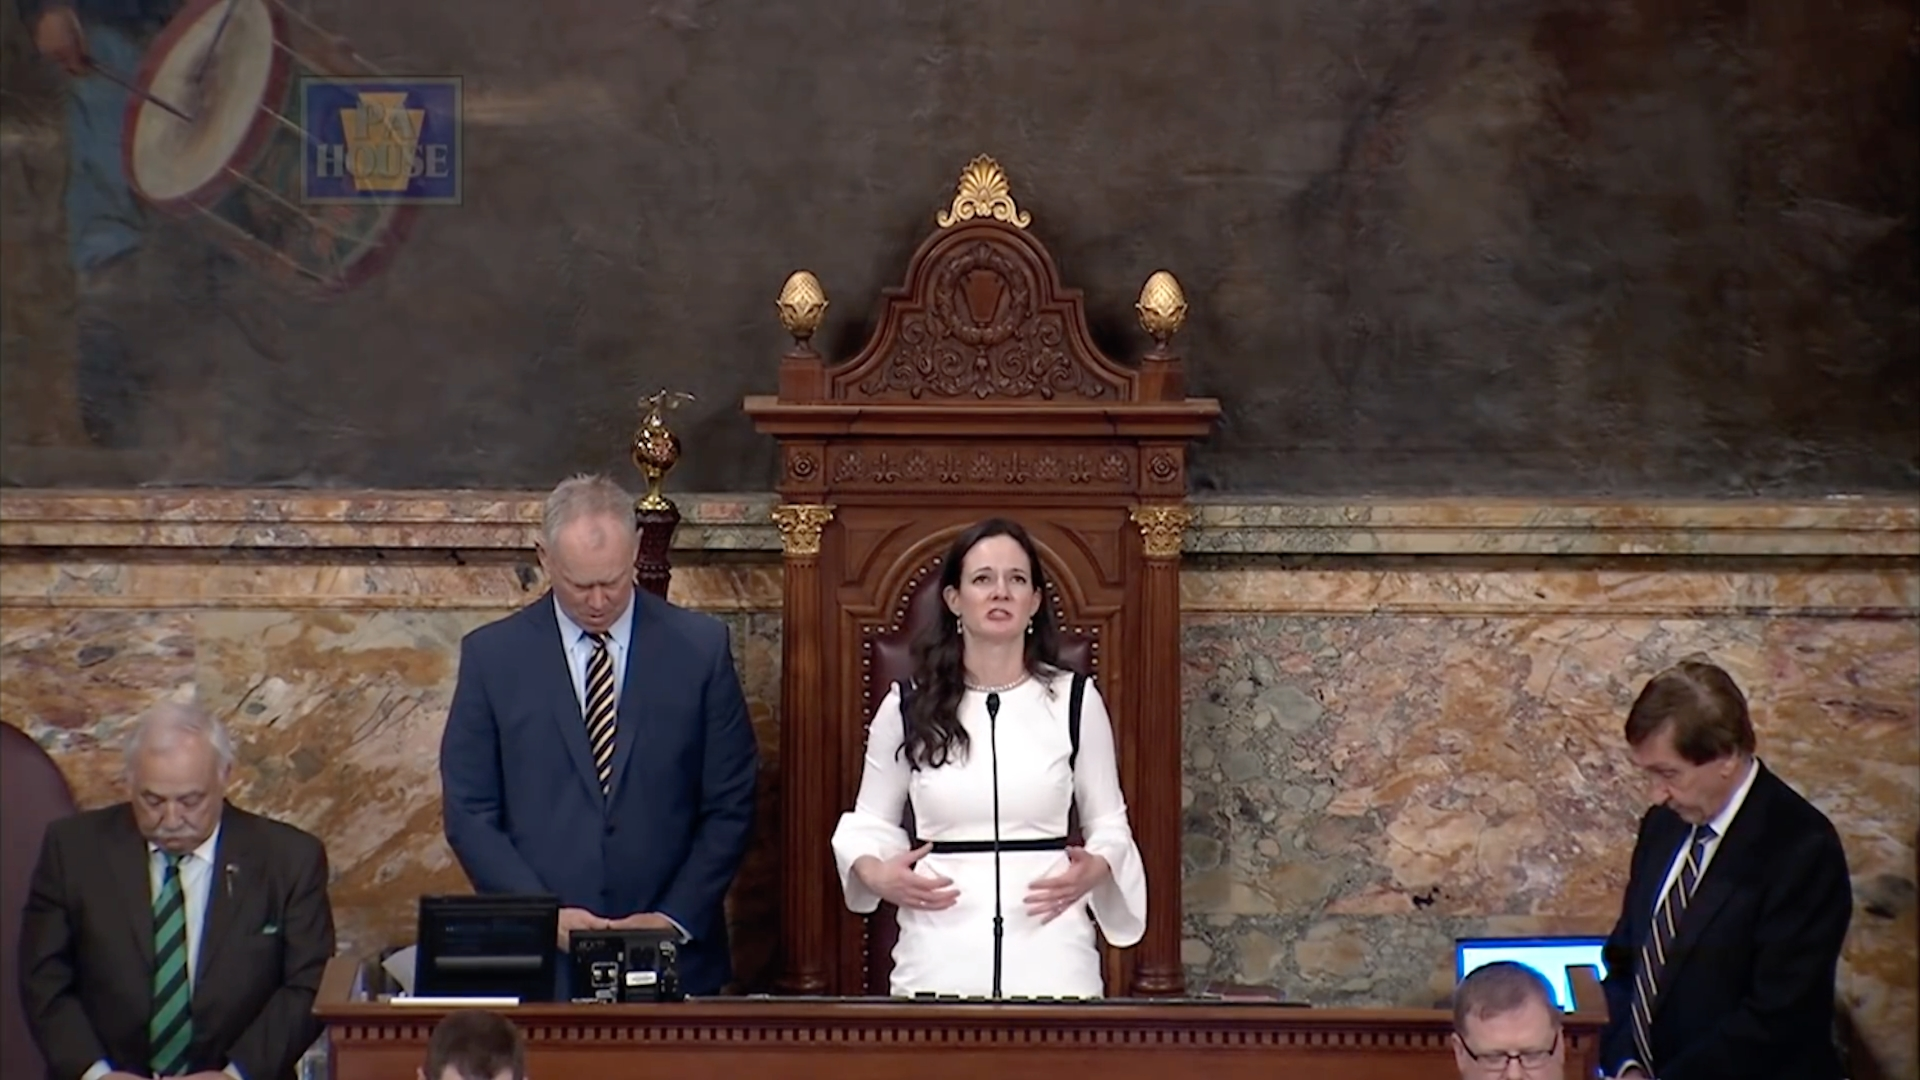 GOP lawmaker prays to Jesus for forgiveness before state's first Muslim woman swears in